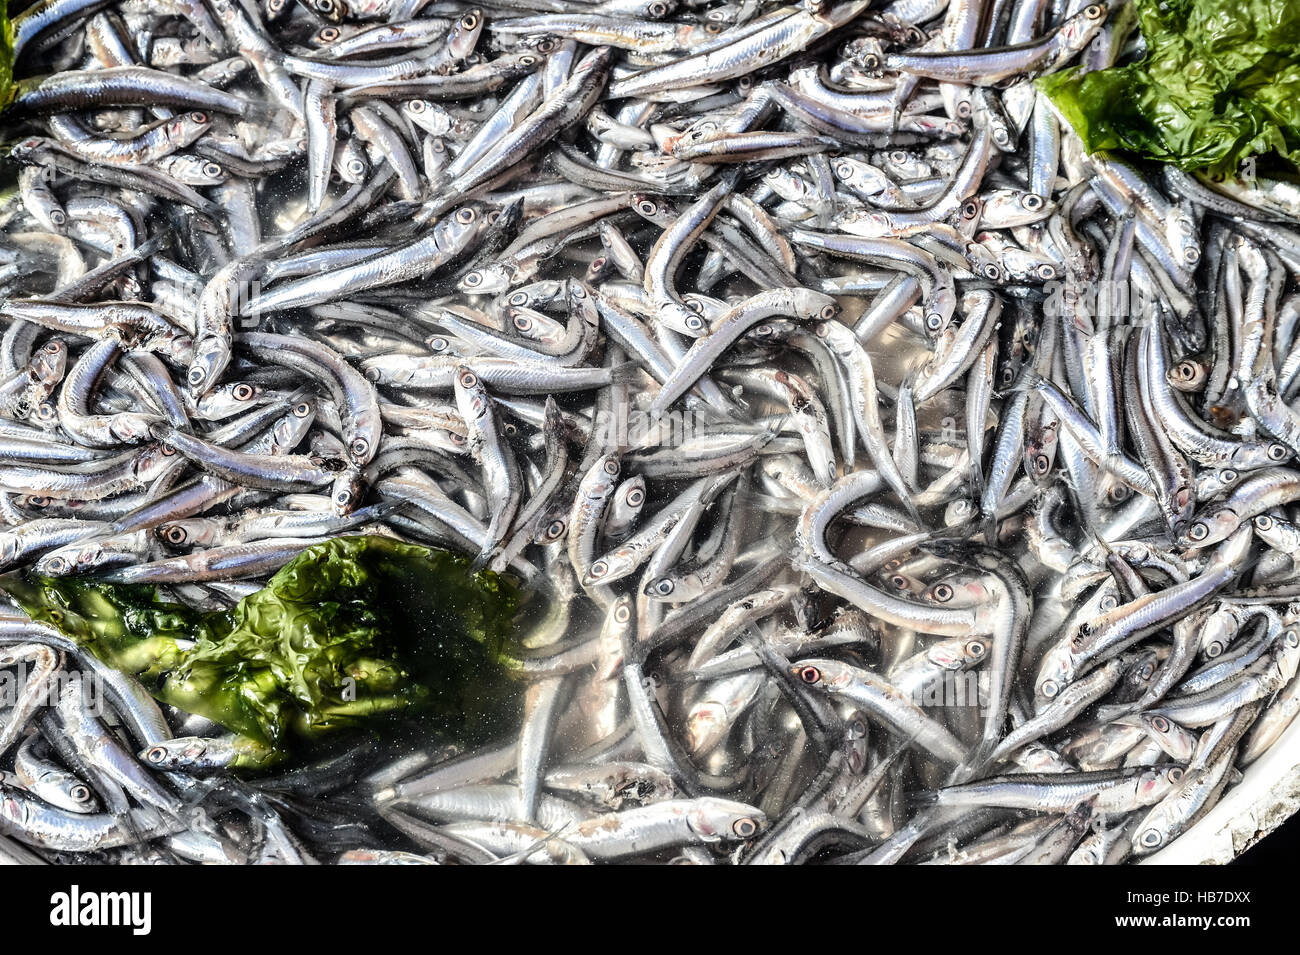 Anchovies in market - Stock Image